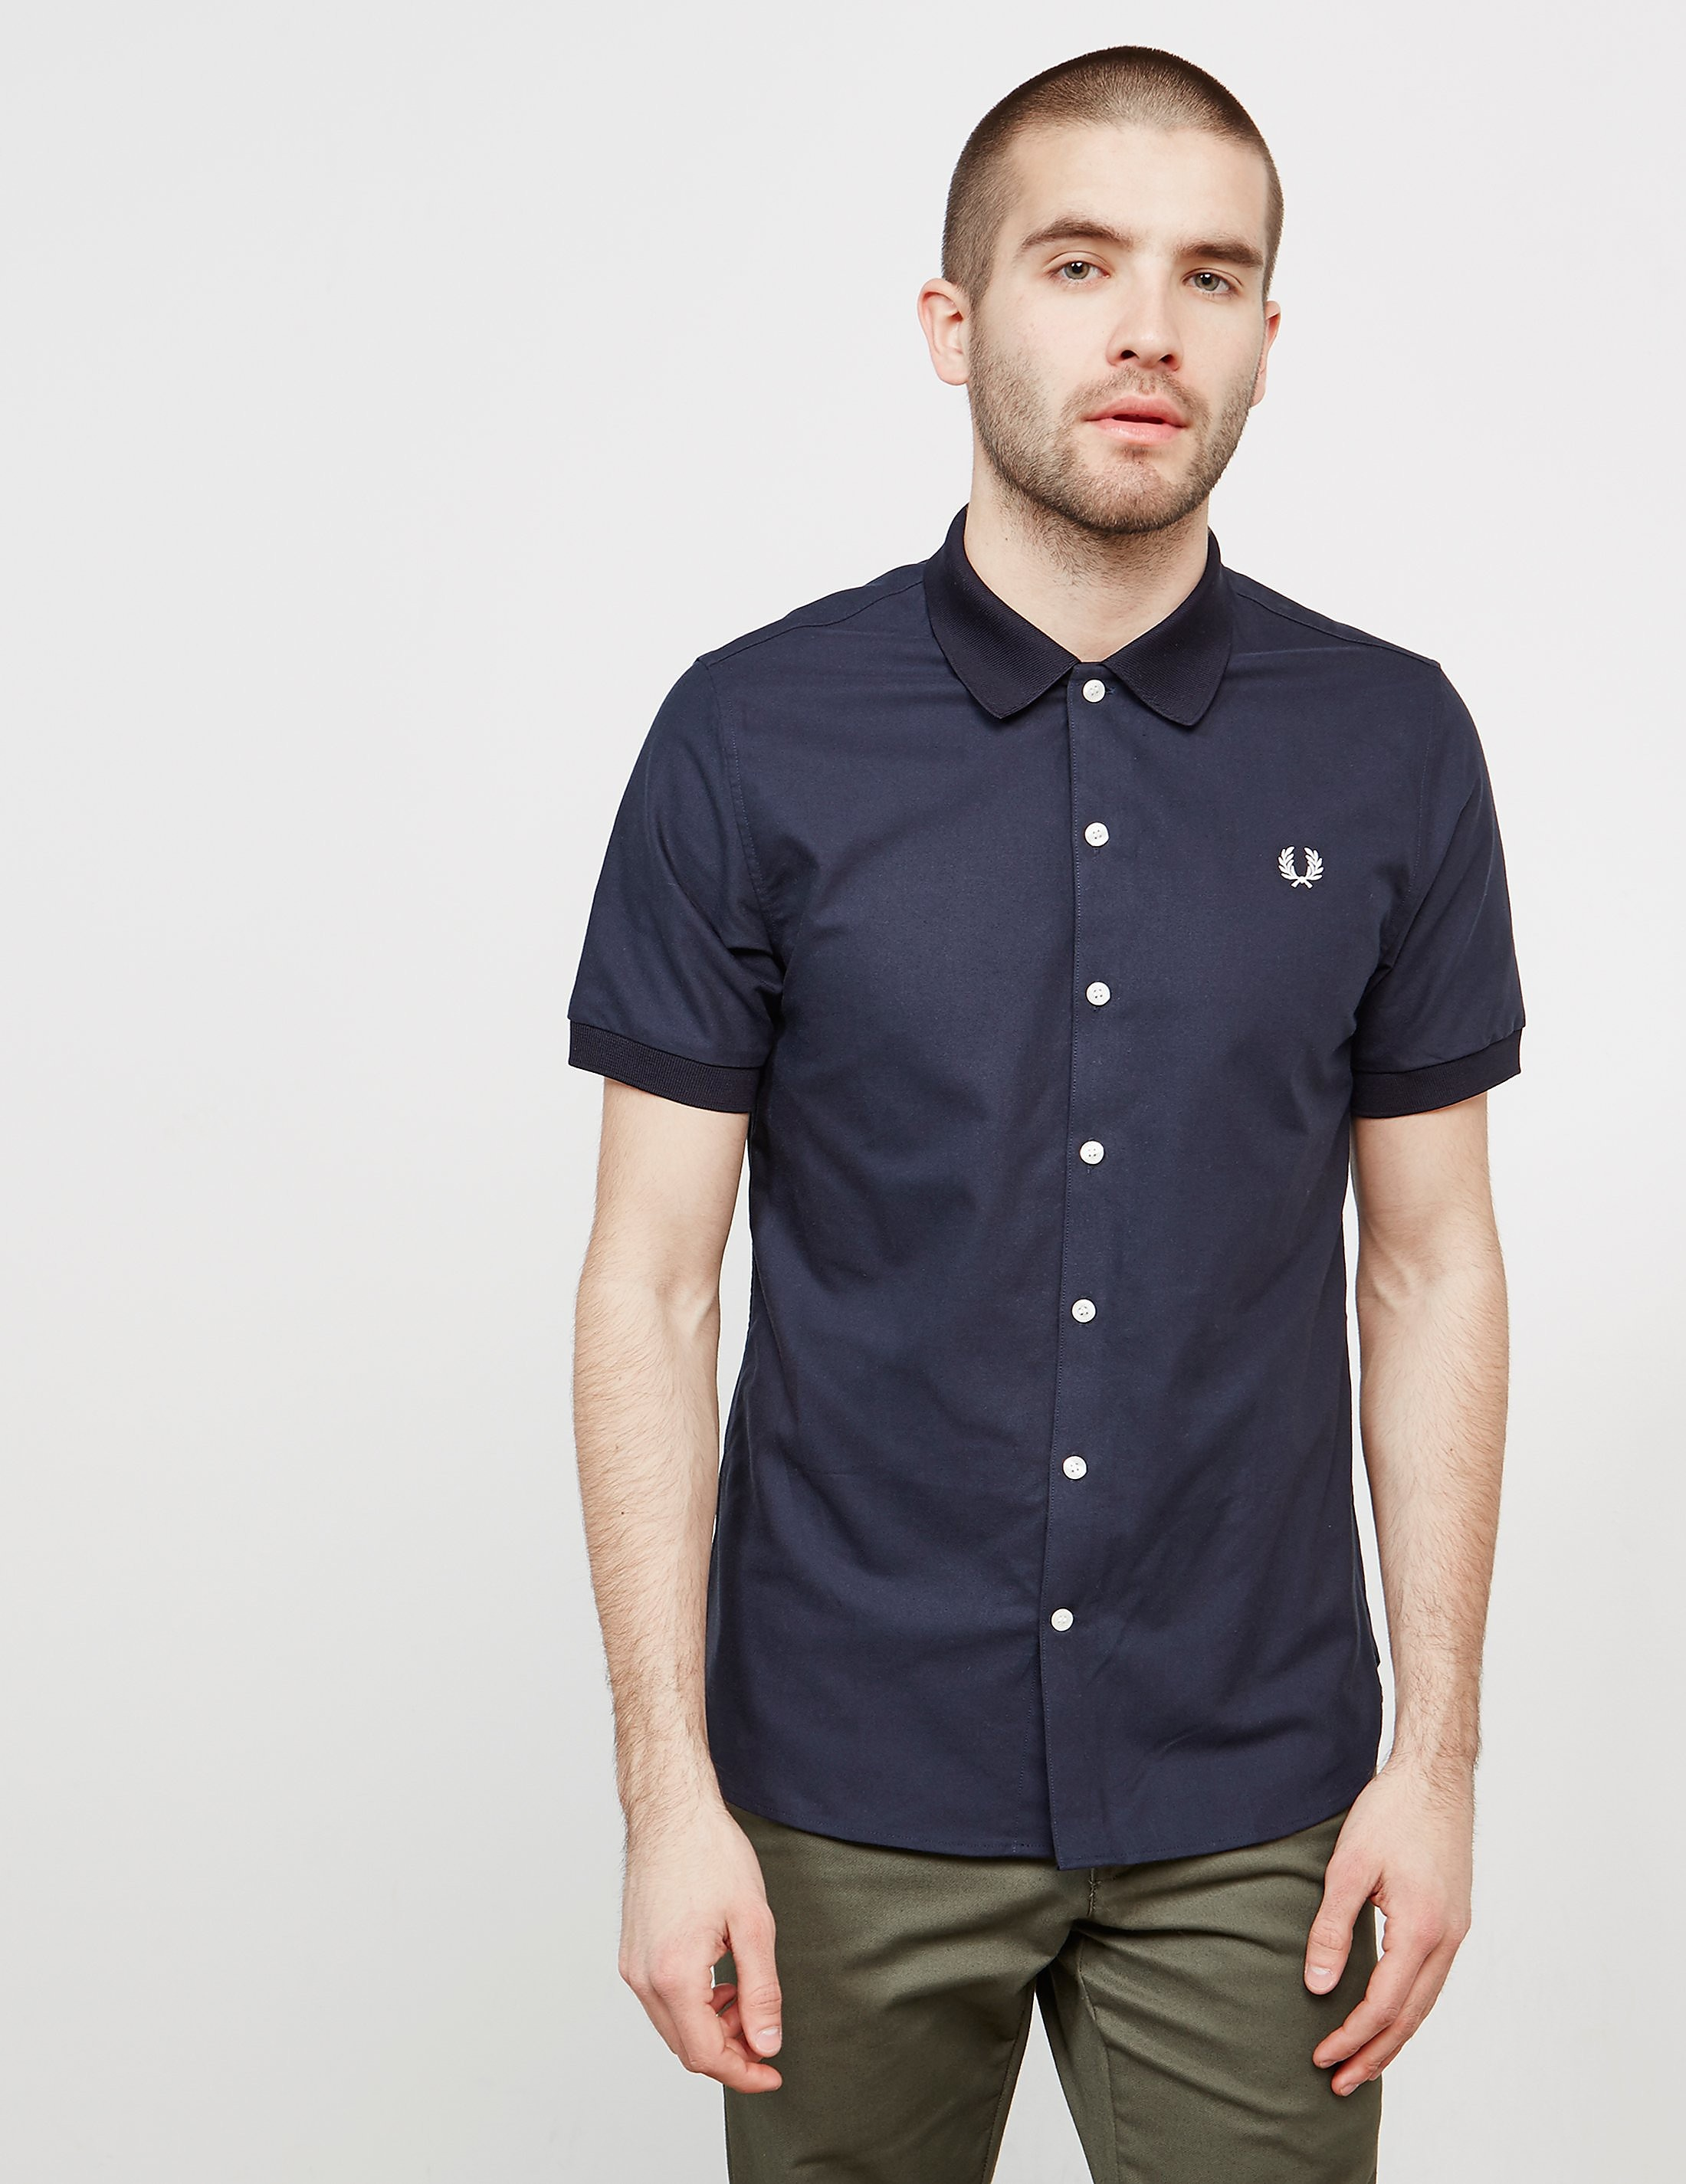 Fred Perry Knitted Collar Short Sleeve Oxford Shirt